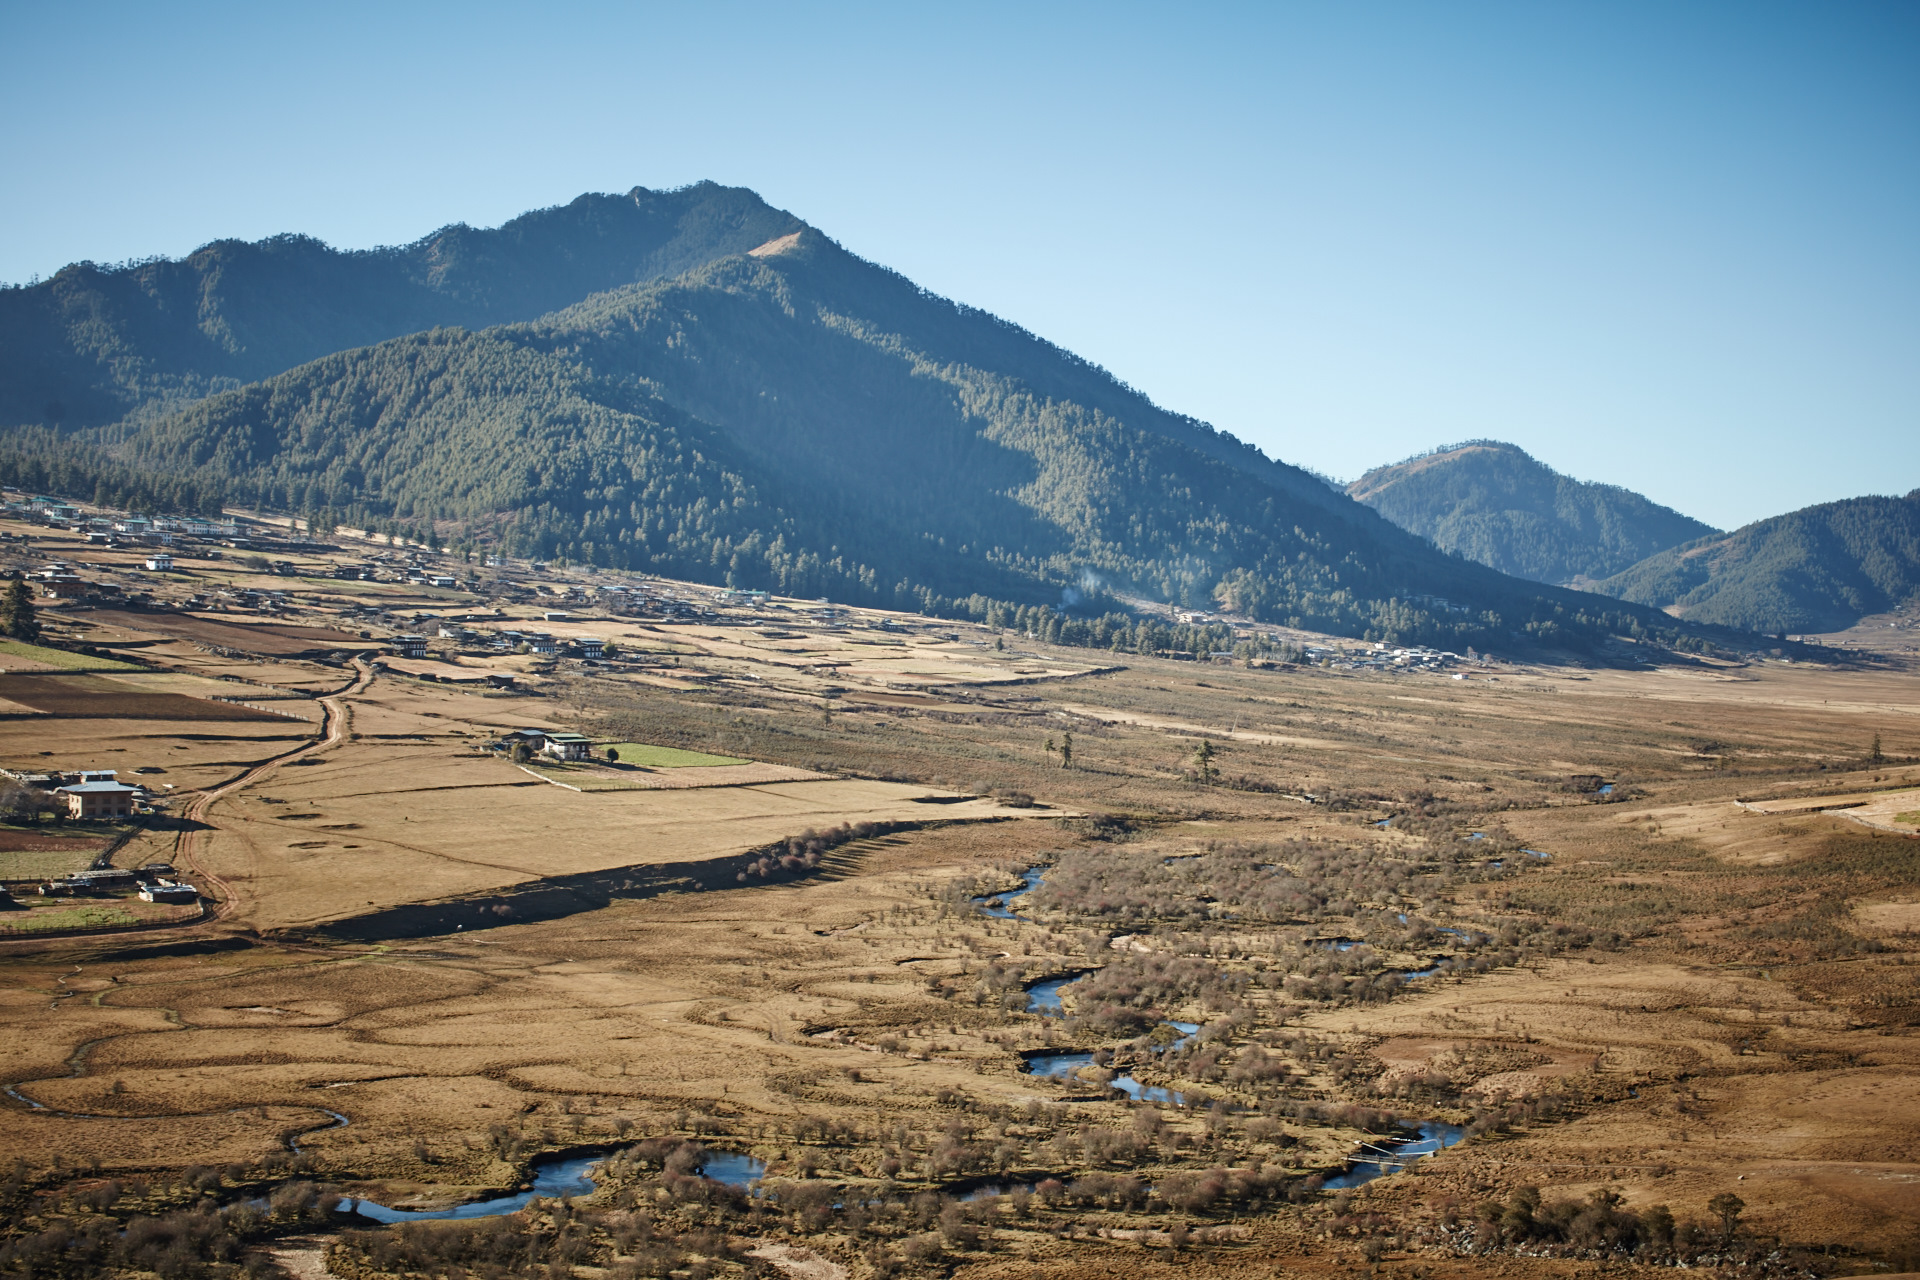 Hiking in the Phobjikha Valley where Black-necked Cranes visit every winter